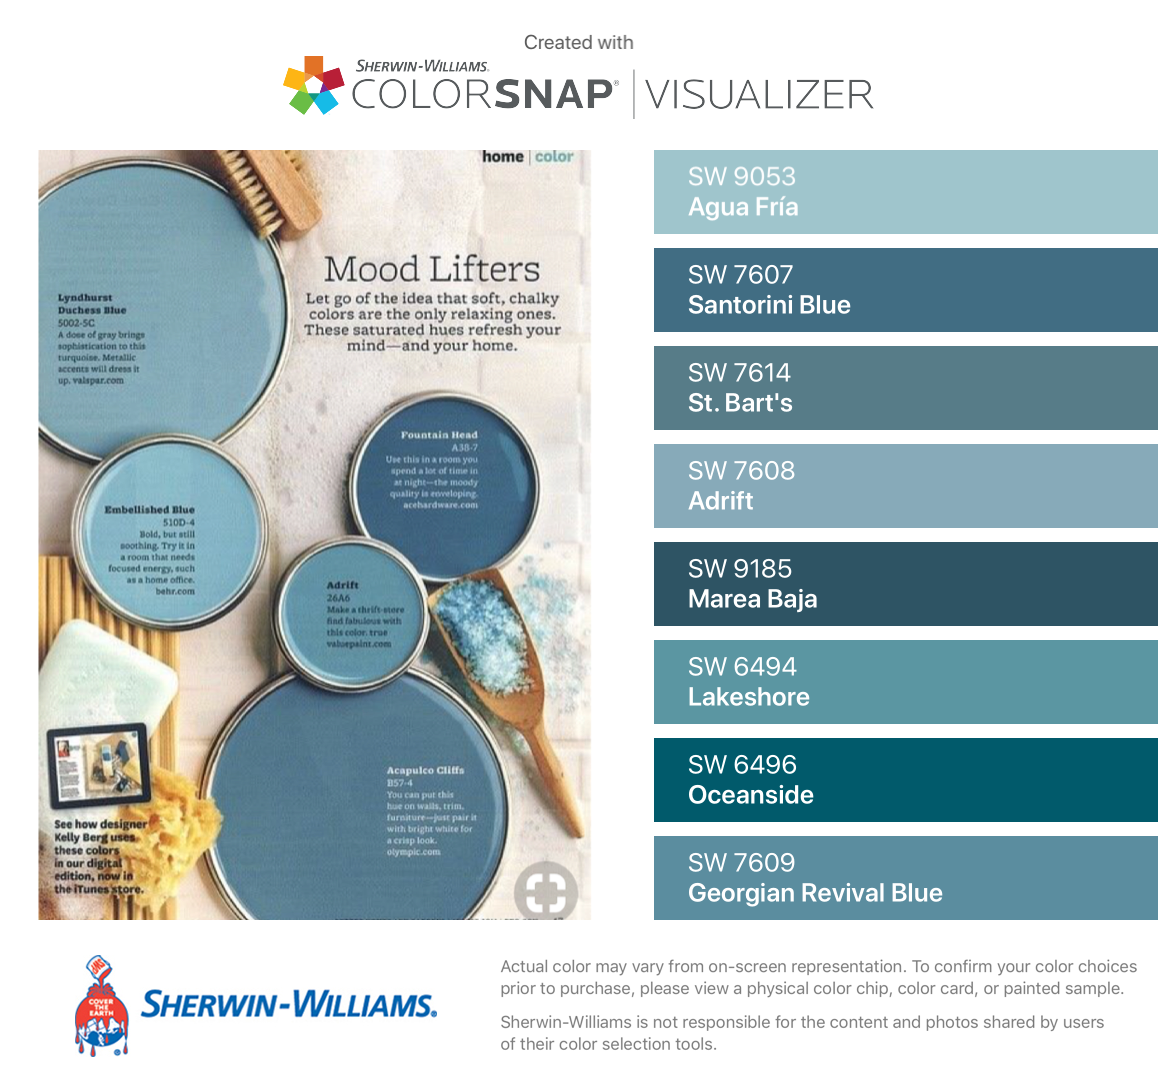 I Found These Colors With Colorsnap Visualizer For Iphone By Sherwin Williams Agua Fria Sw Fall Paint Colors Sherwin Williams Paint Colors Sherwin Williams